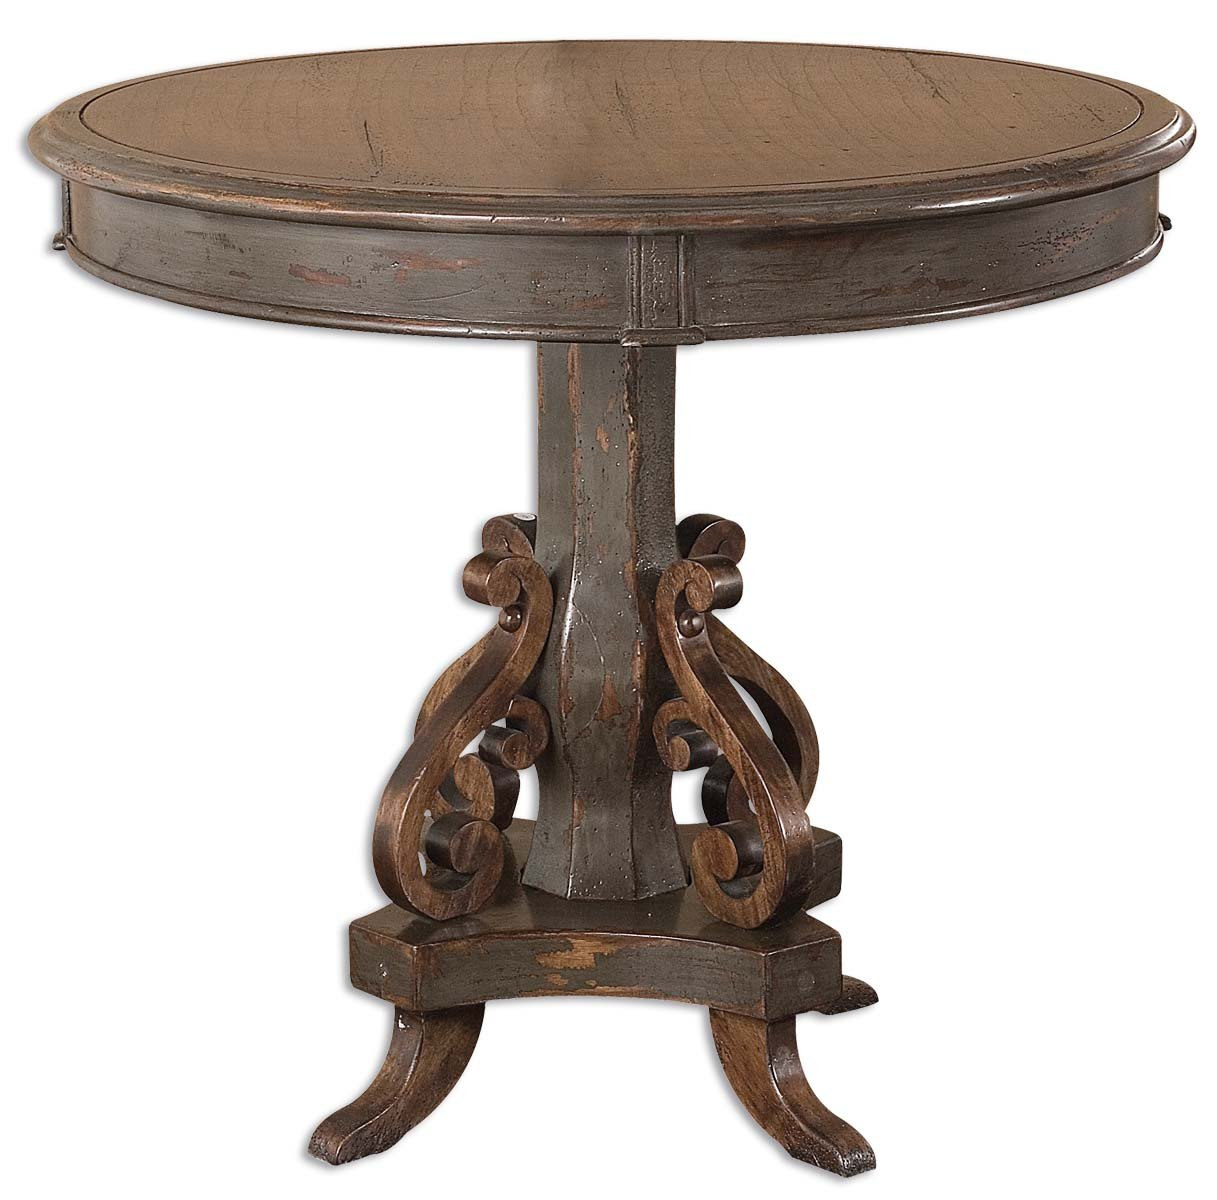 uttermost anya round table inches accent tall kitchen dining ikea desk and end tables bathroom makeovers home goods entryway bench runner rugs pub height beverage cooler side